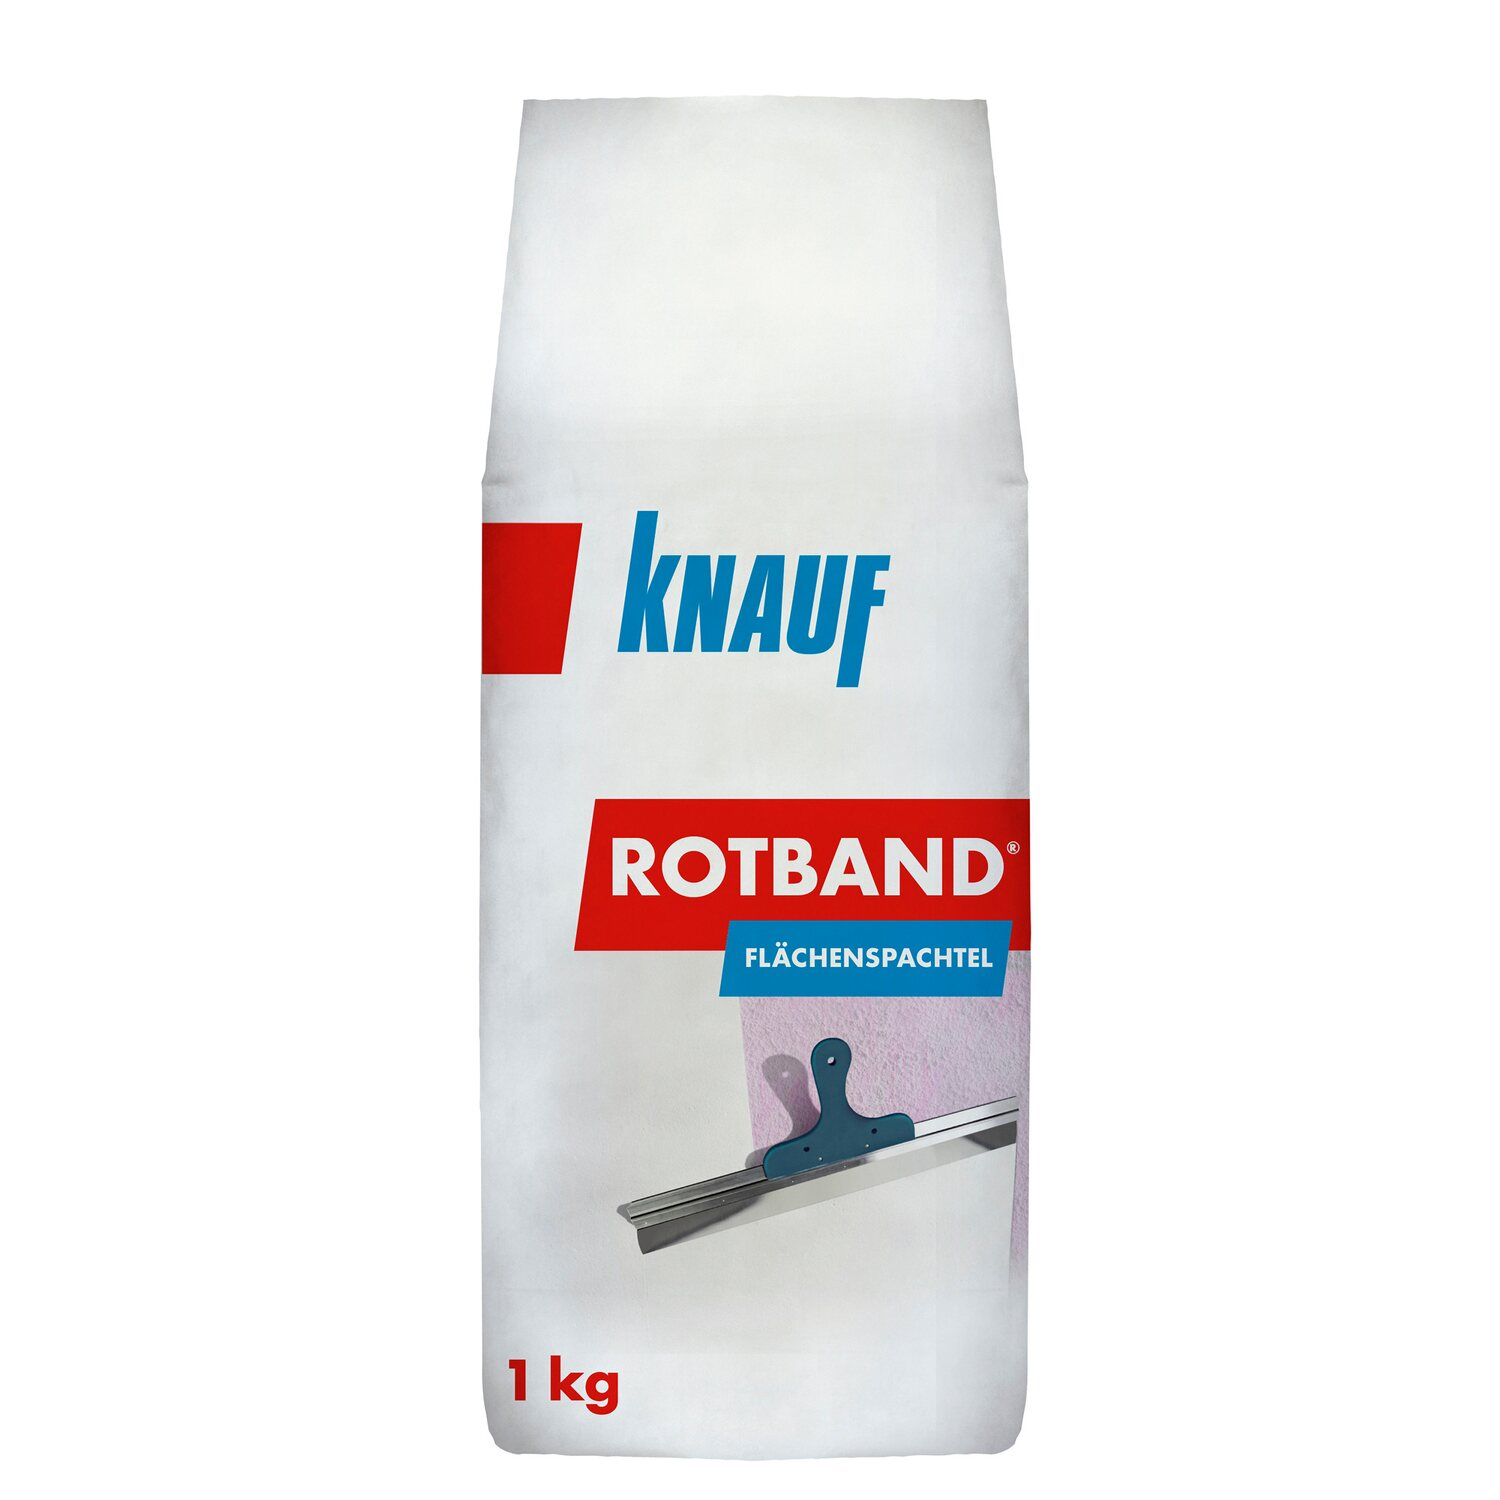 knauf rotband fl chenspachtel 1 kg kaufen bei obi. Black Bedroom Furniture Sets. Home Design Ideas